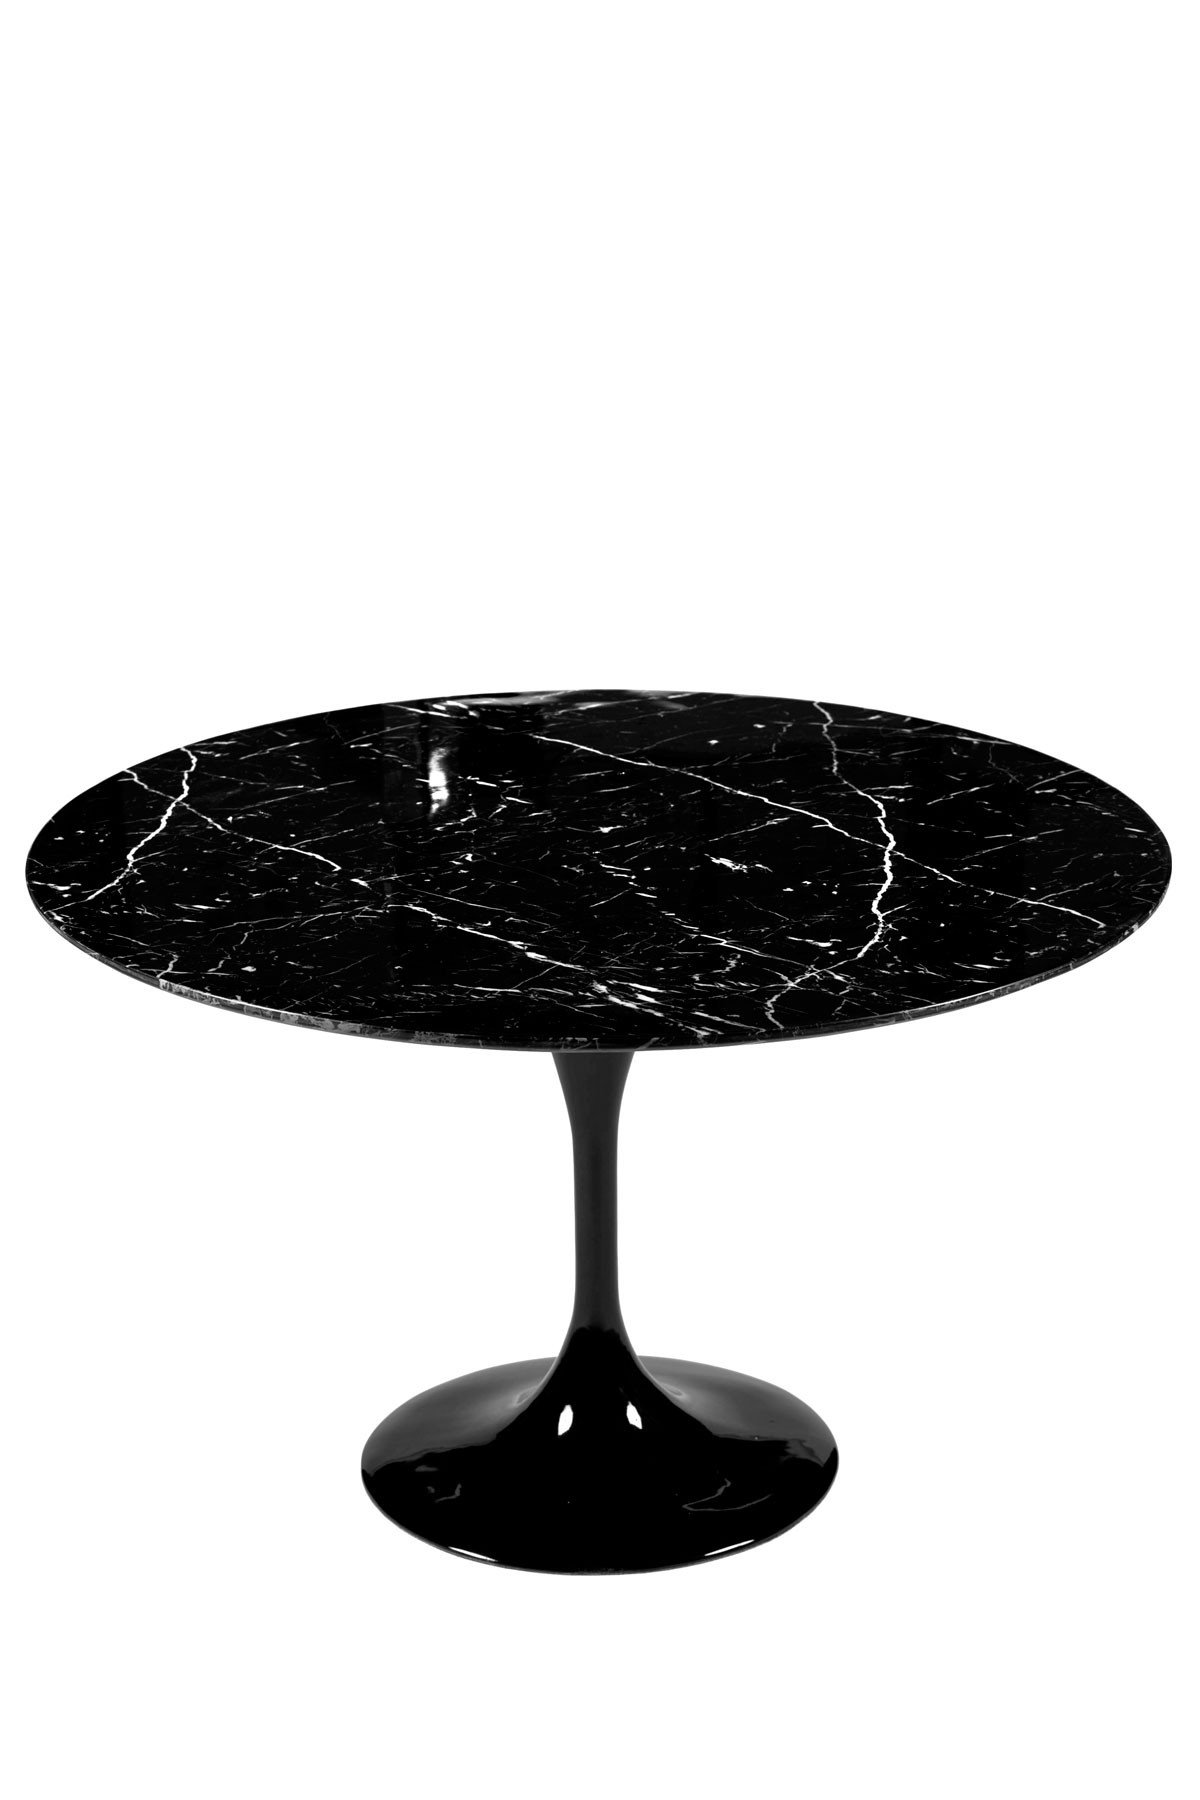 Saarinen 36 Round Tulip Marble Dining Table Eero Saarinen Njmodern Furniture